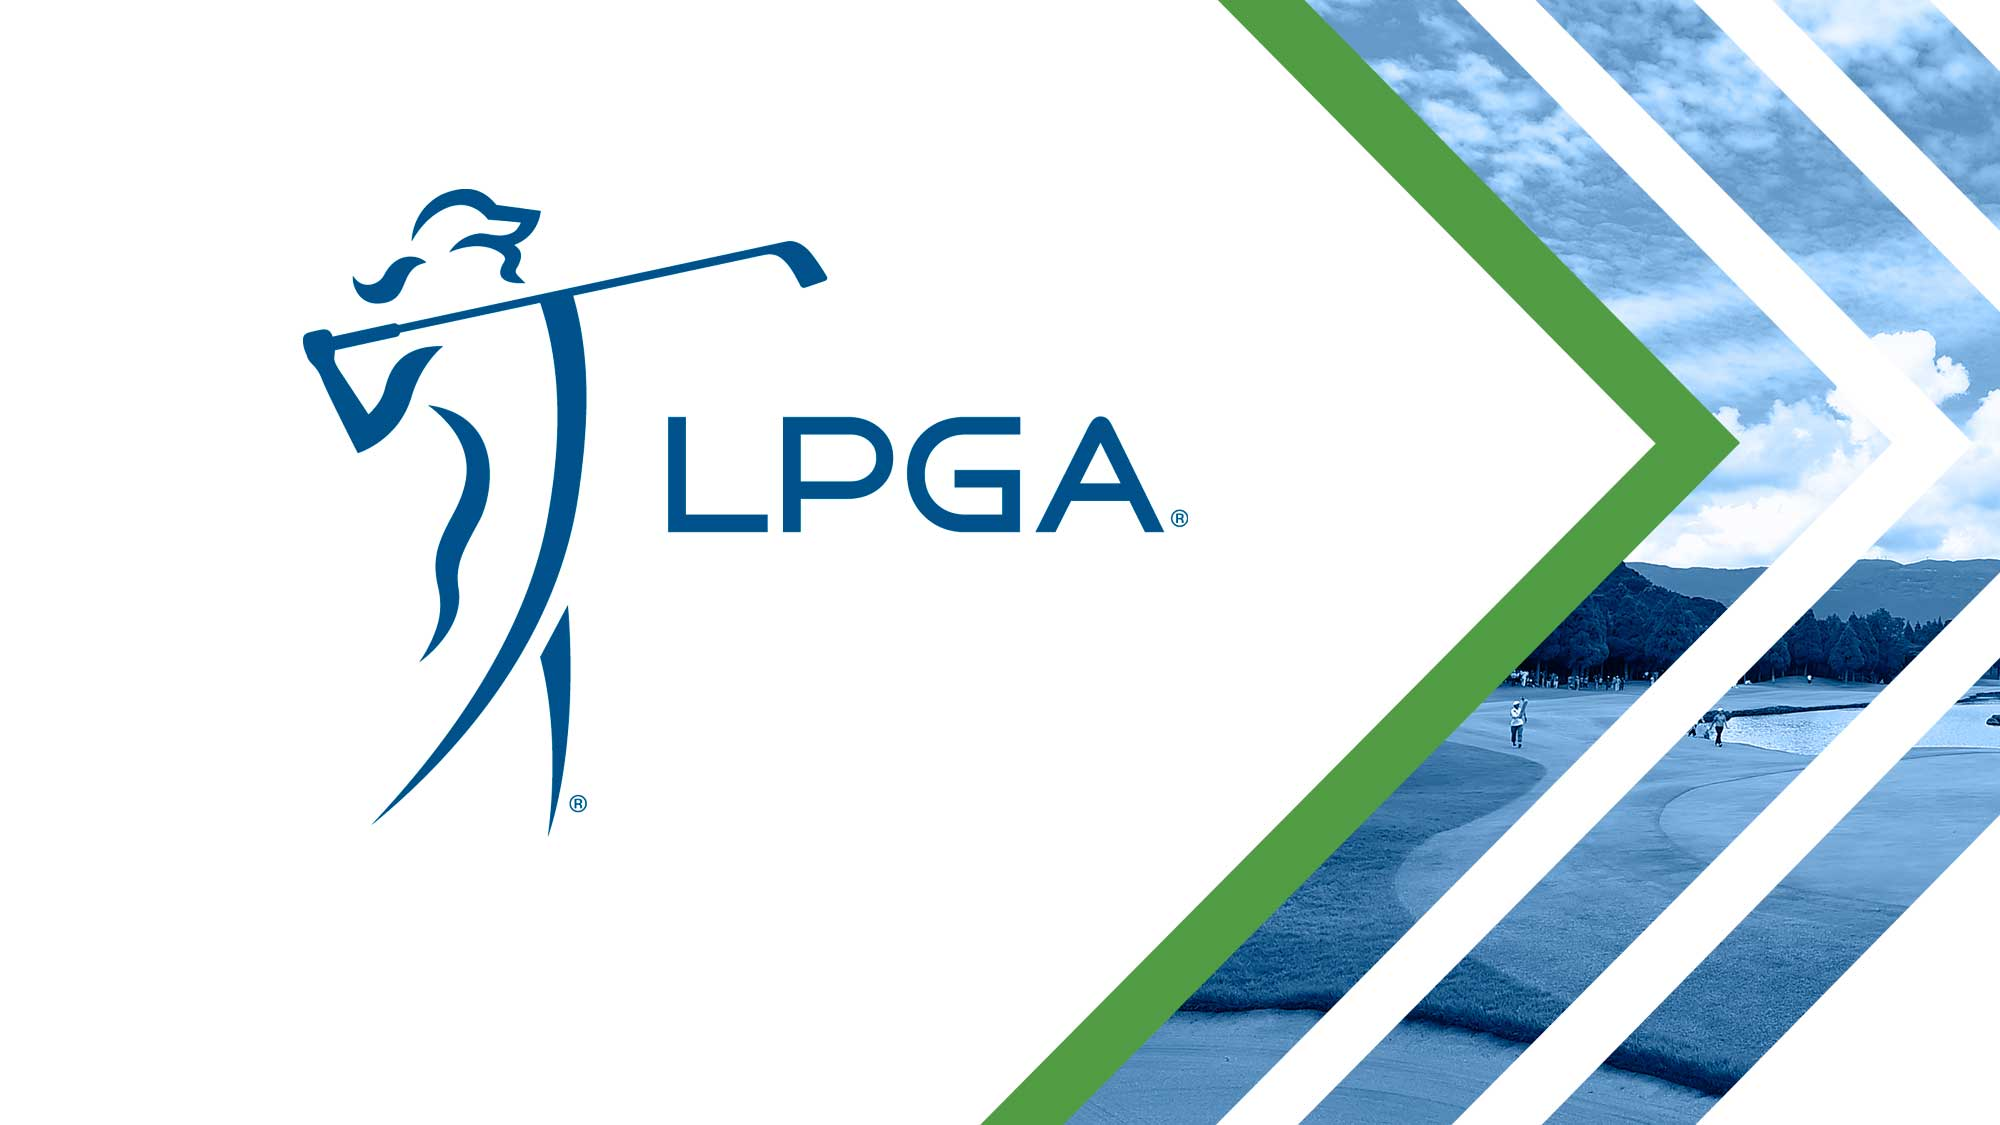 LPGA to Sponsor a 'Growing The Game Of Golf' Symposium in California